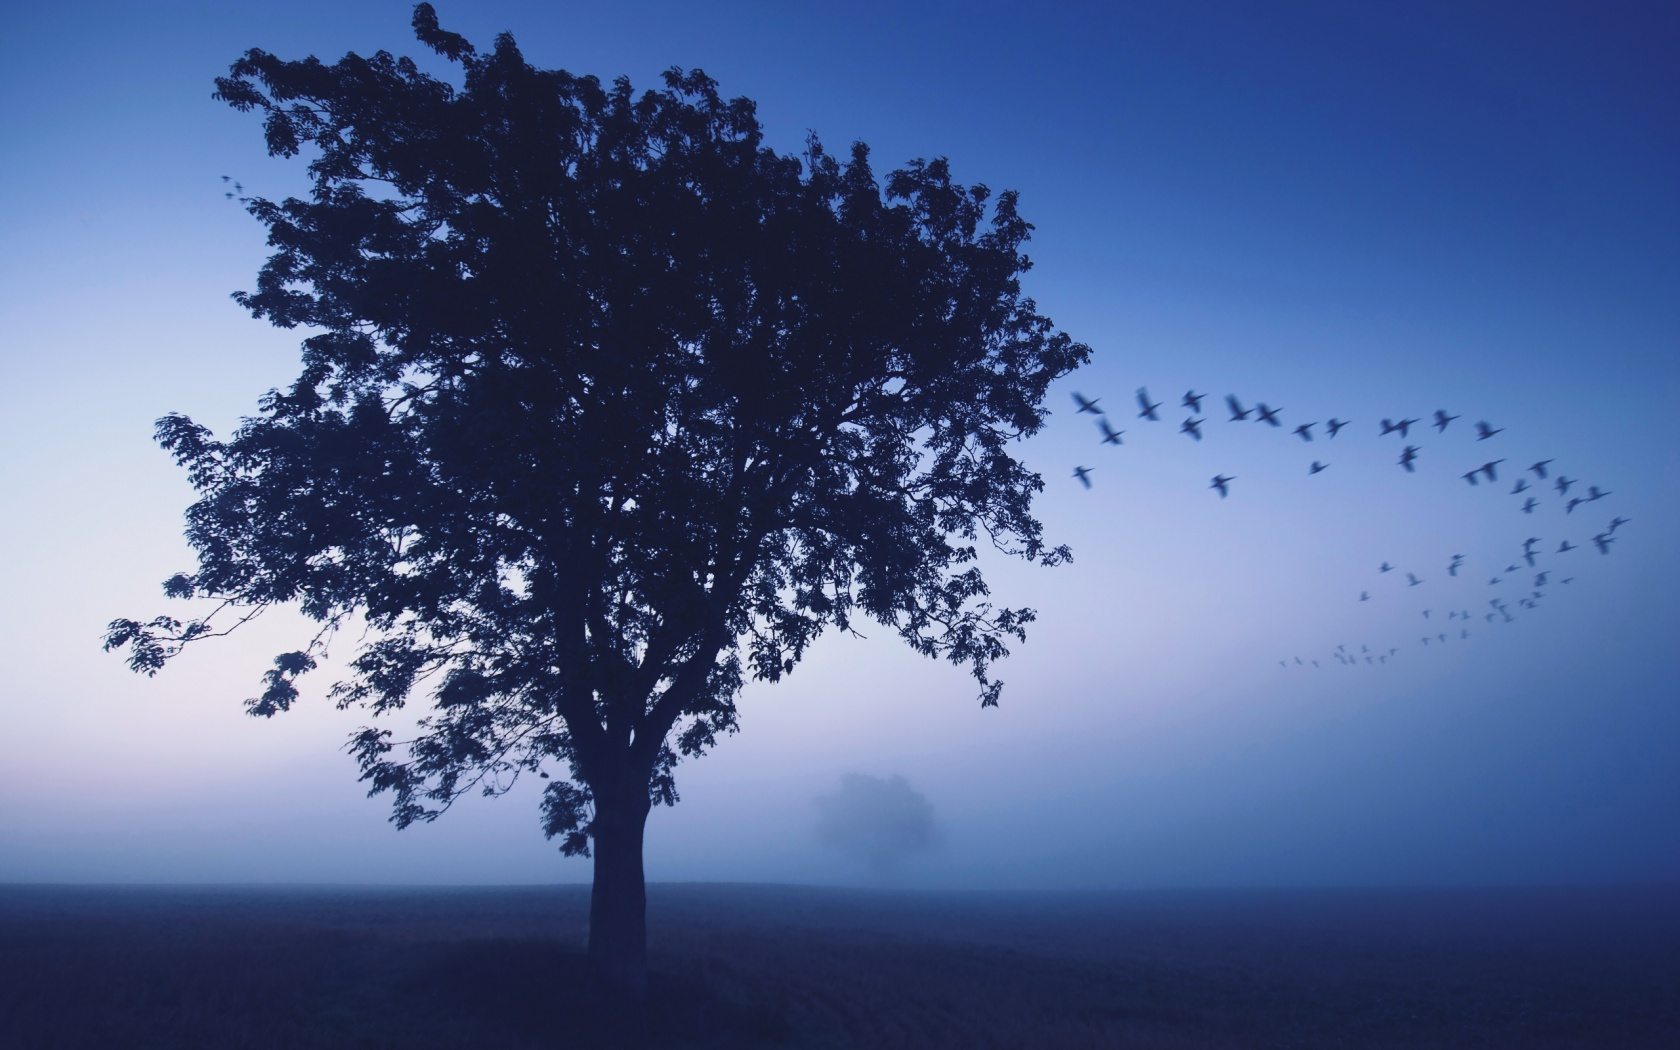 Misty Morning With Flying Bird